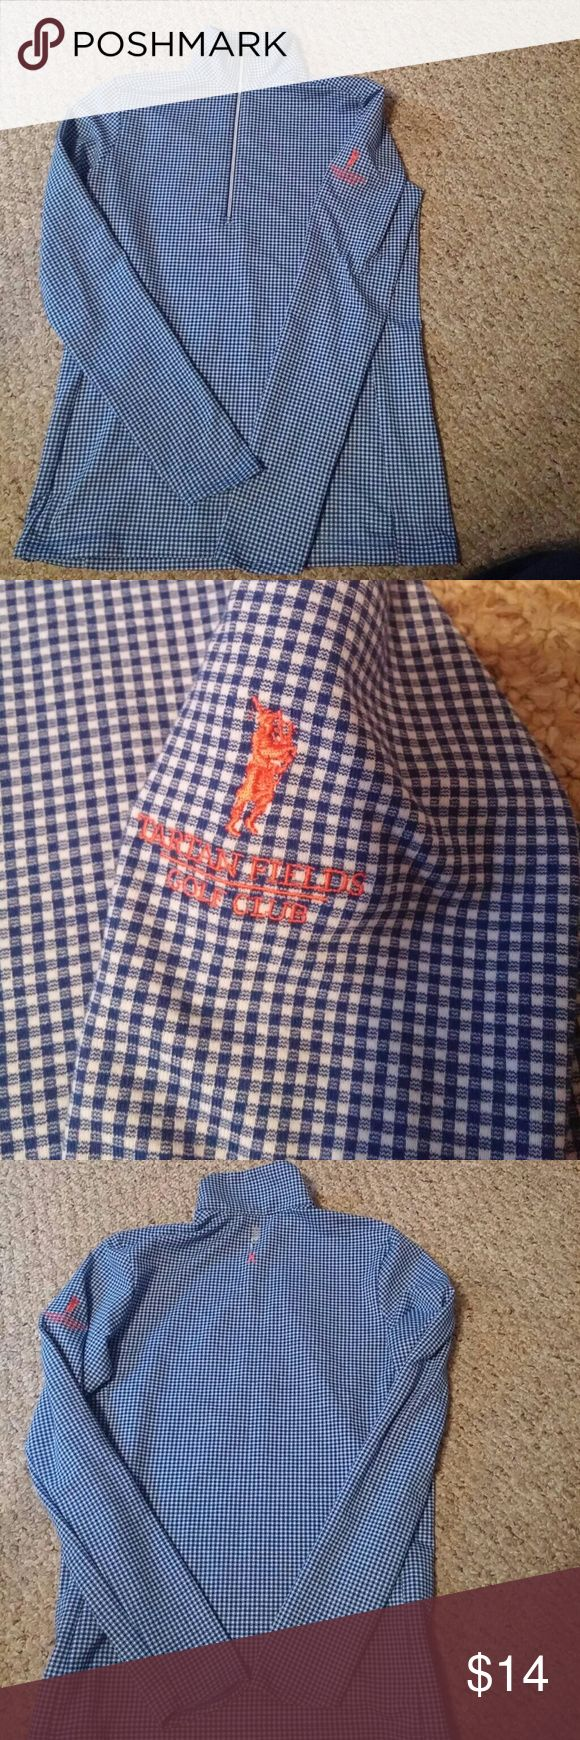 Ralph Lauren zip top checkered shirt This is an adorable blue and white Ralph Lauren checkered shirt Polo pullover with zipper. Size small Tops Tees - Long Sleeve